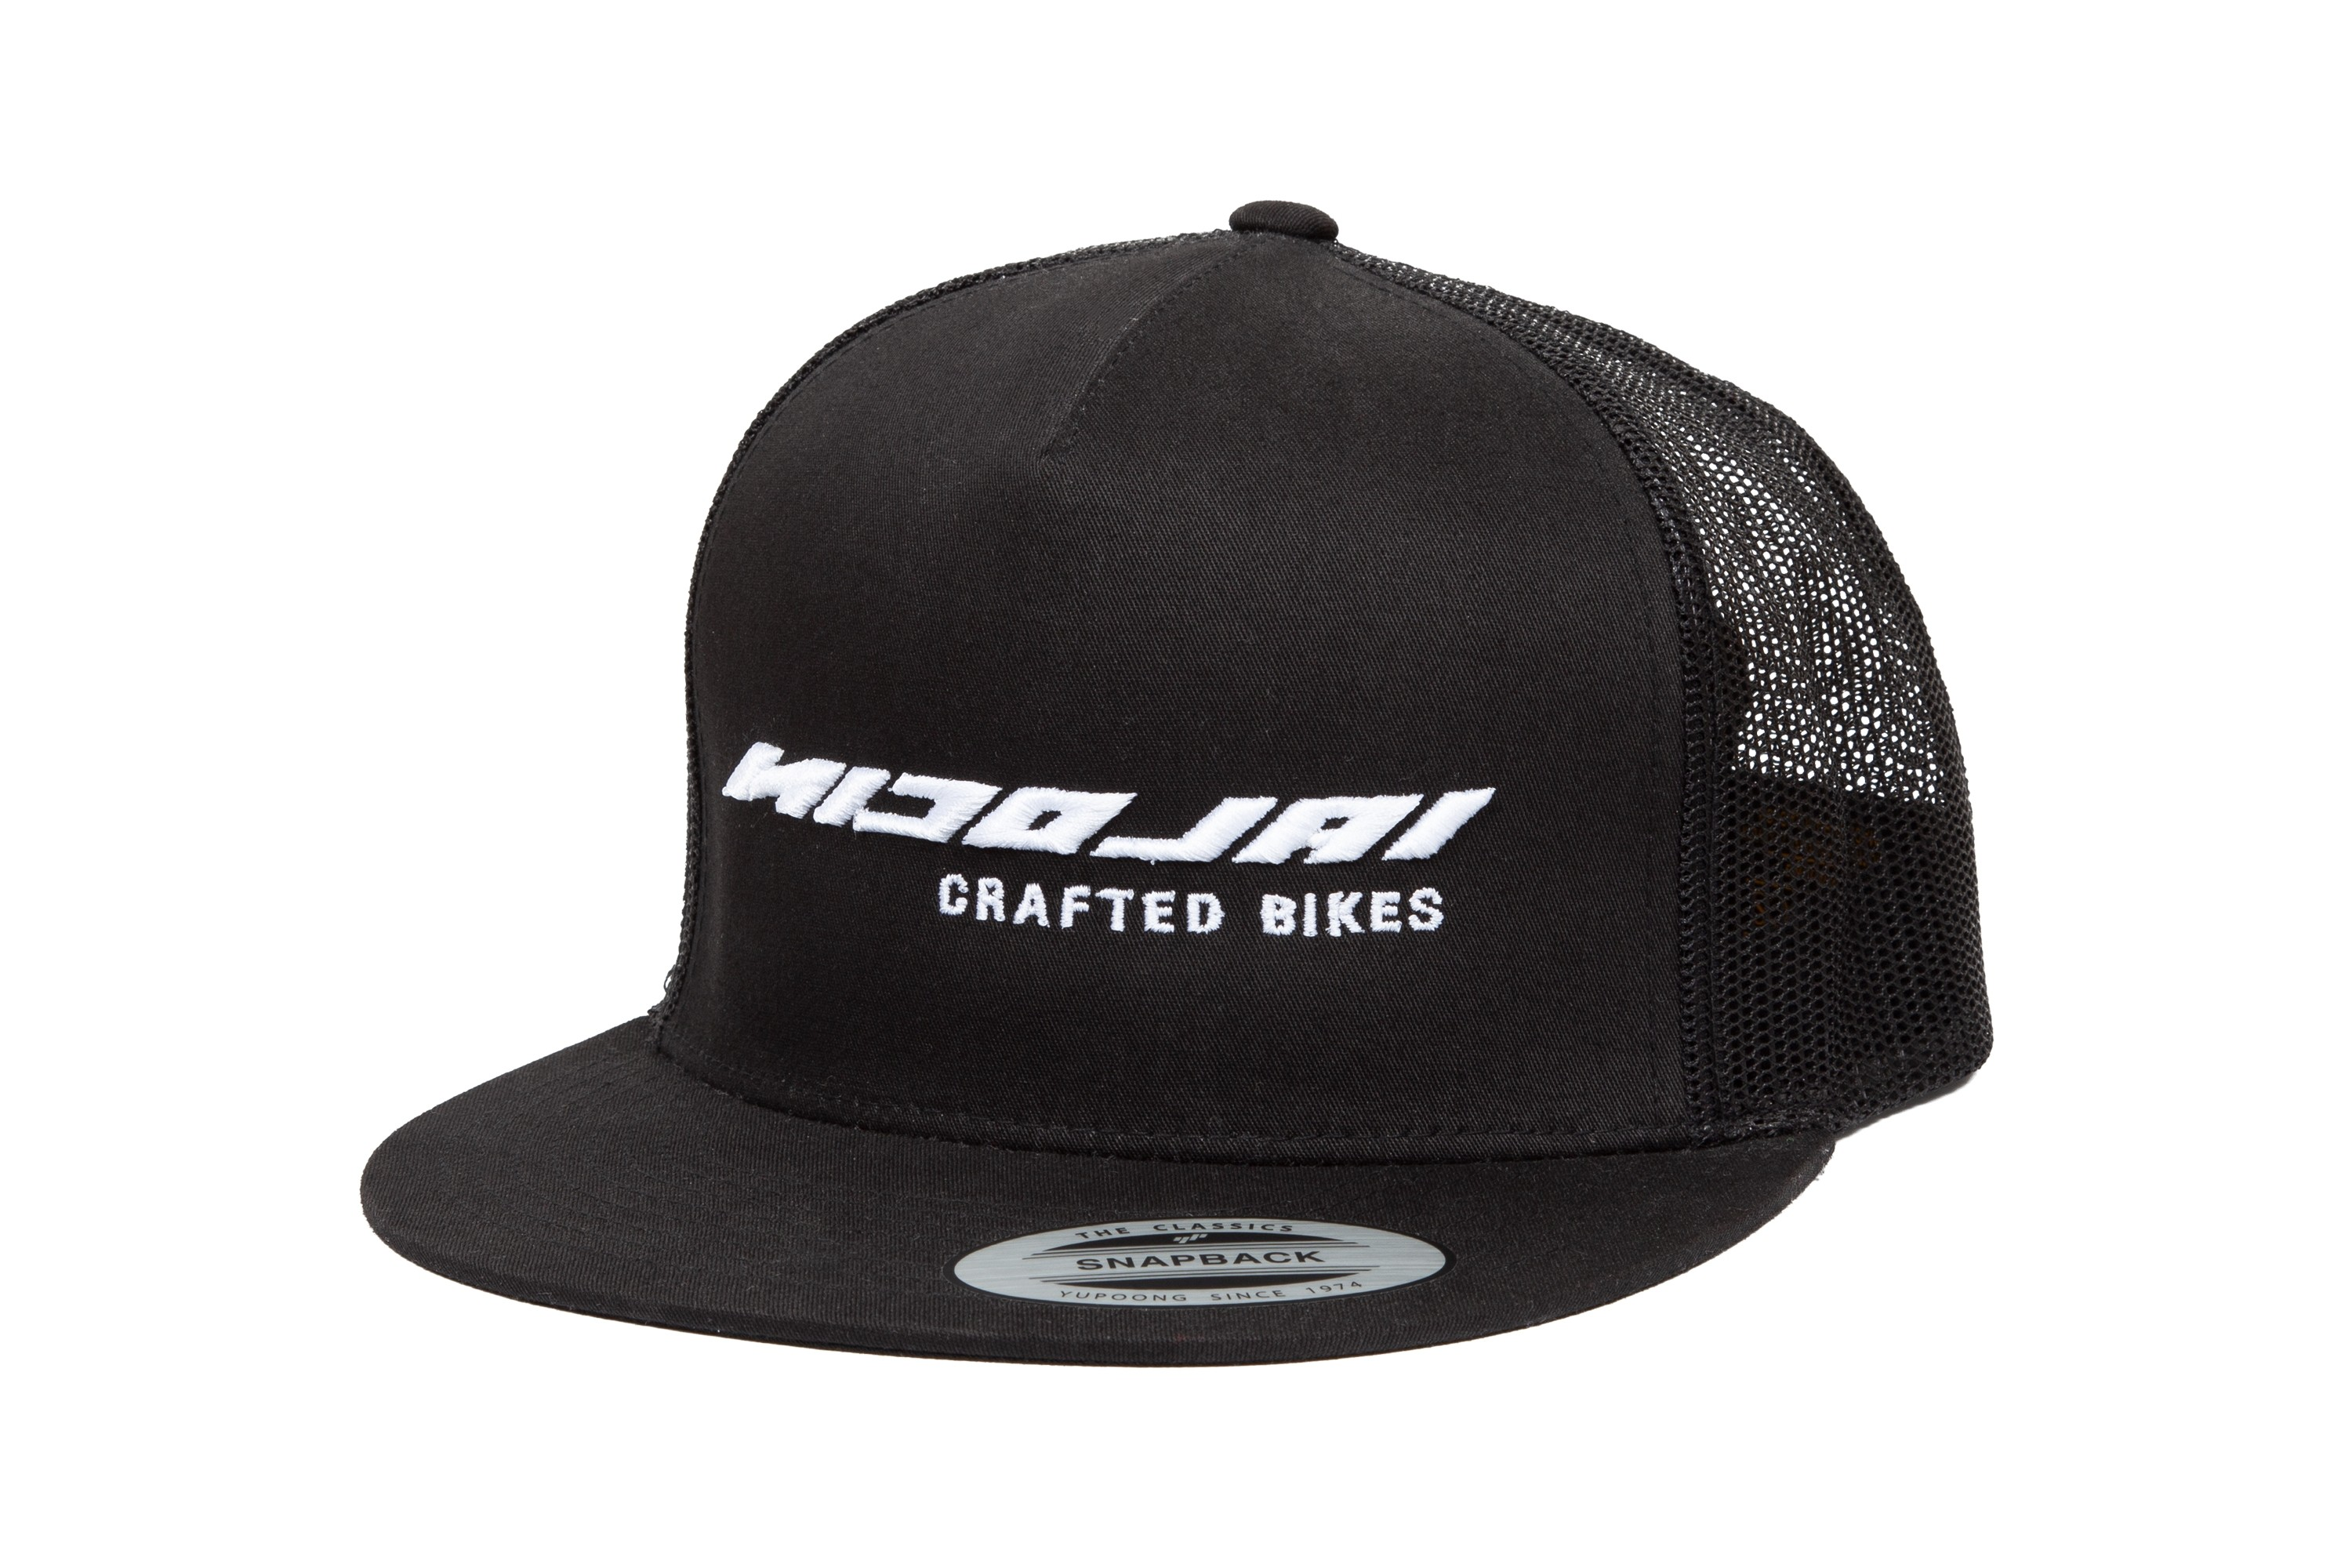 CRAFTED BIKES SNAPBACK